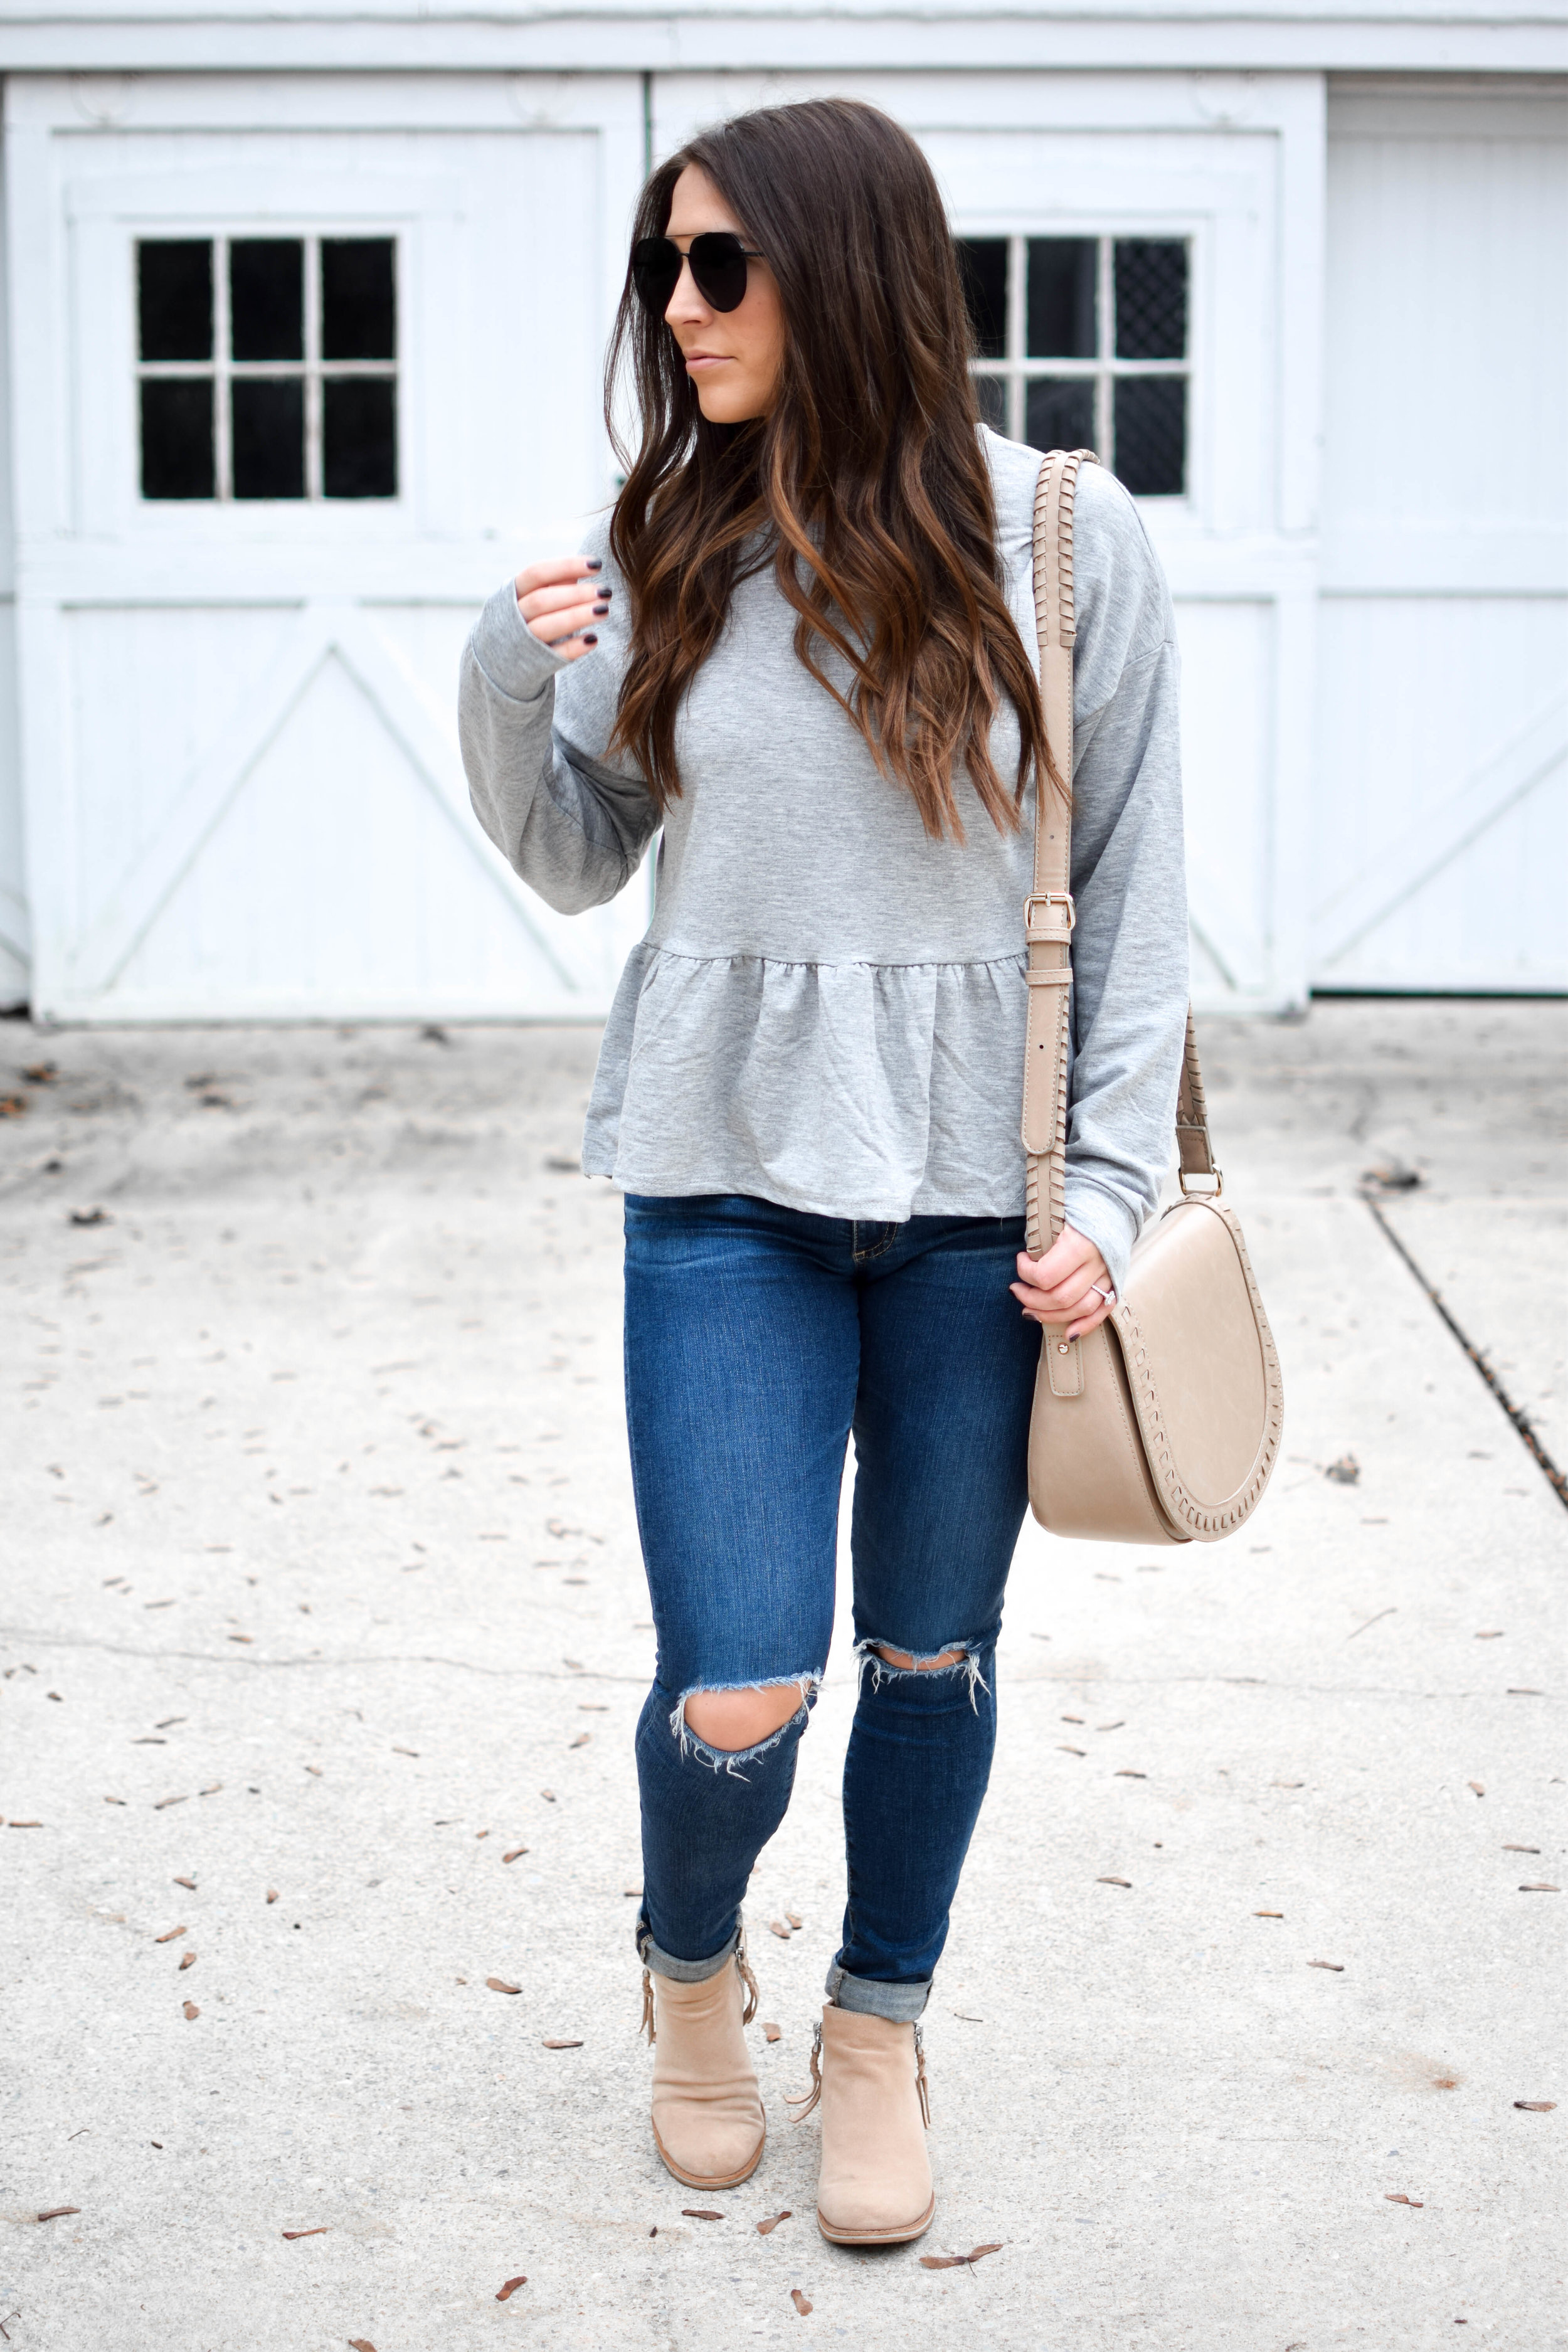 fall fashion / fall outfit idea / fall outfit inspiration / grey peplum sweatshirt / casual fall outfit